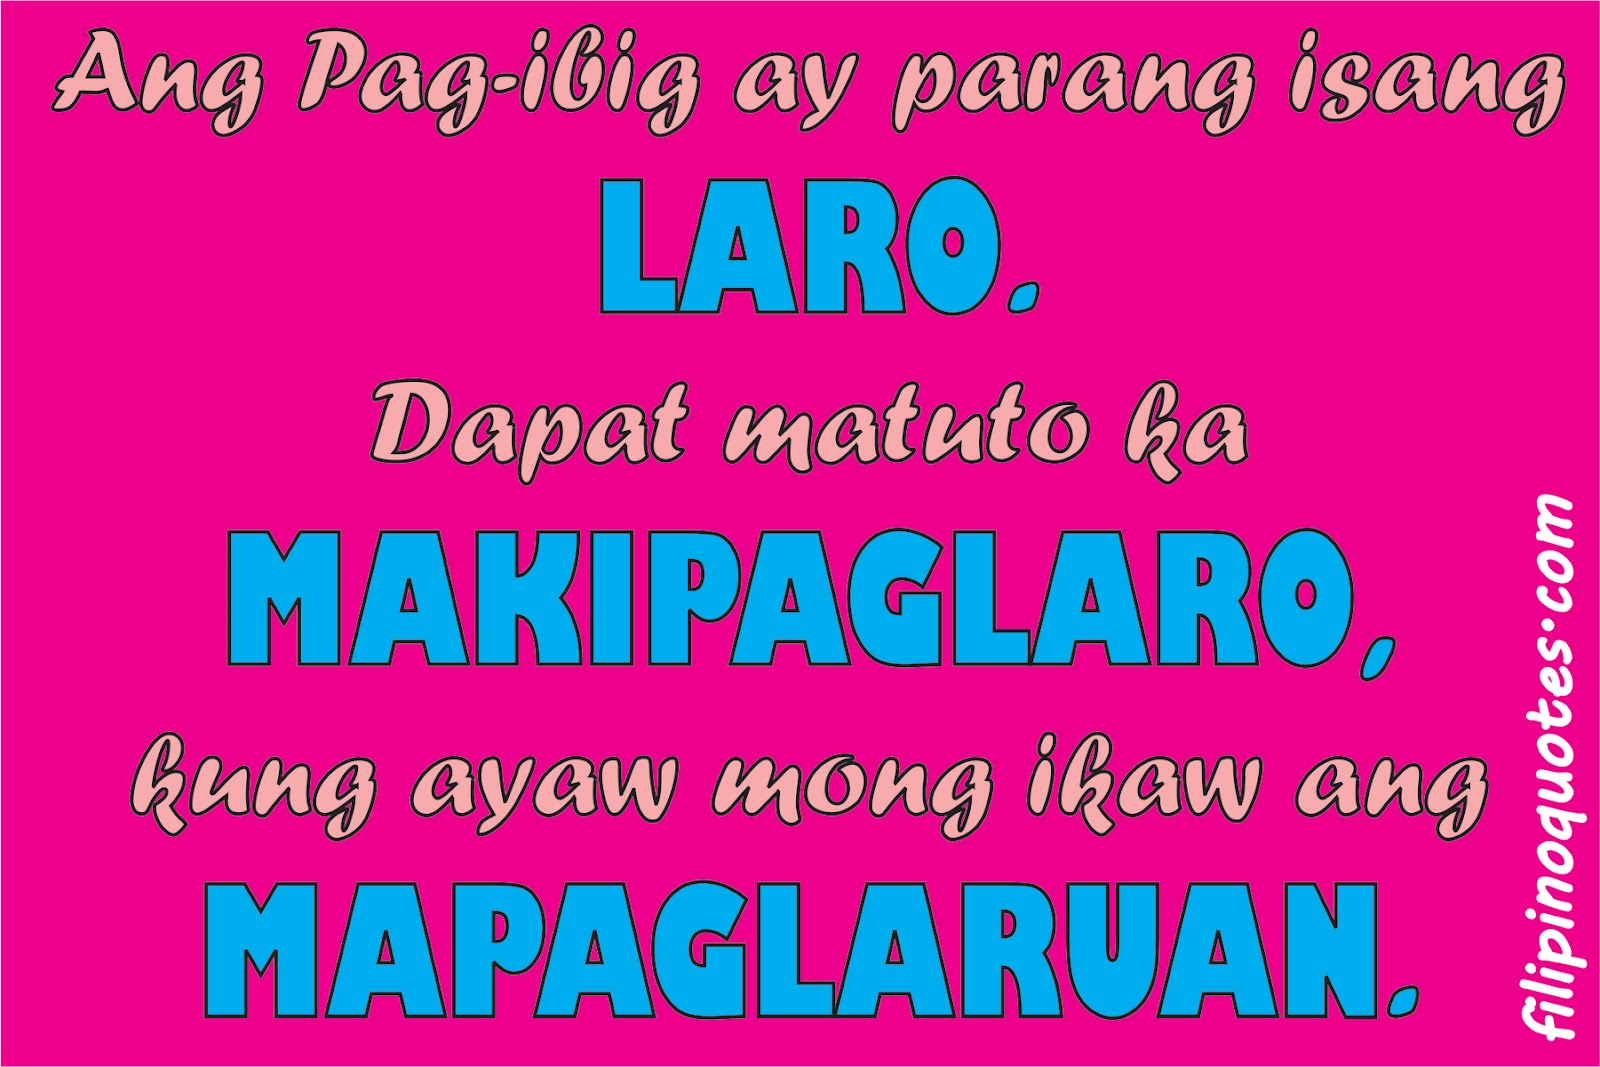 Funny Quotes Love Tagalog : Tagalog Love Quotes (May 2012) - Tagalog Love Quotes